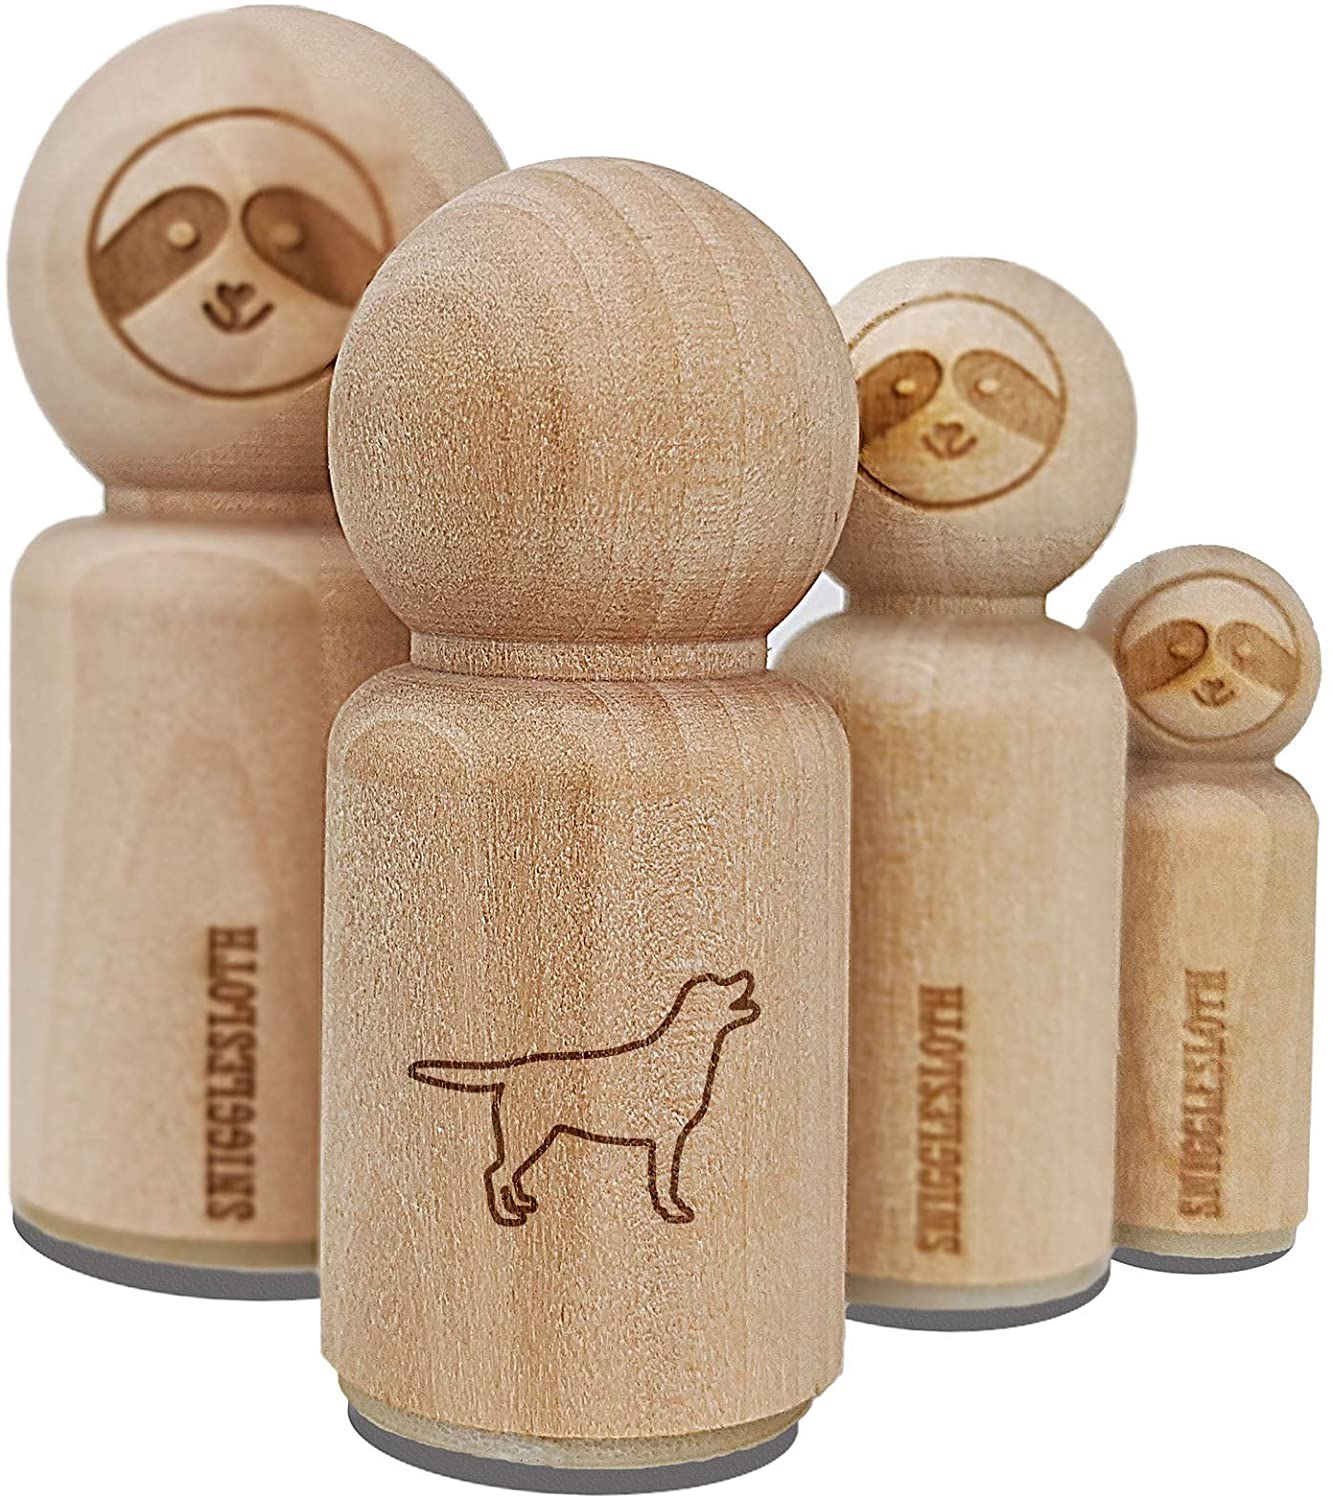 Labrador Retriever Dog Outline Rubber Stamp for Stamping Crafting Planners - 1/2 Inch Mini